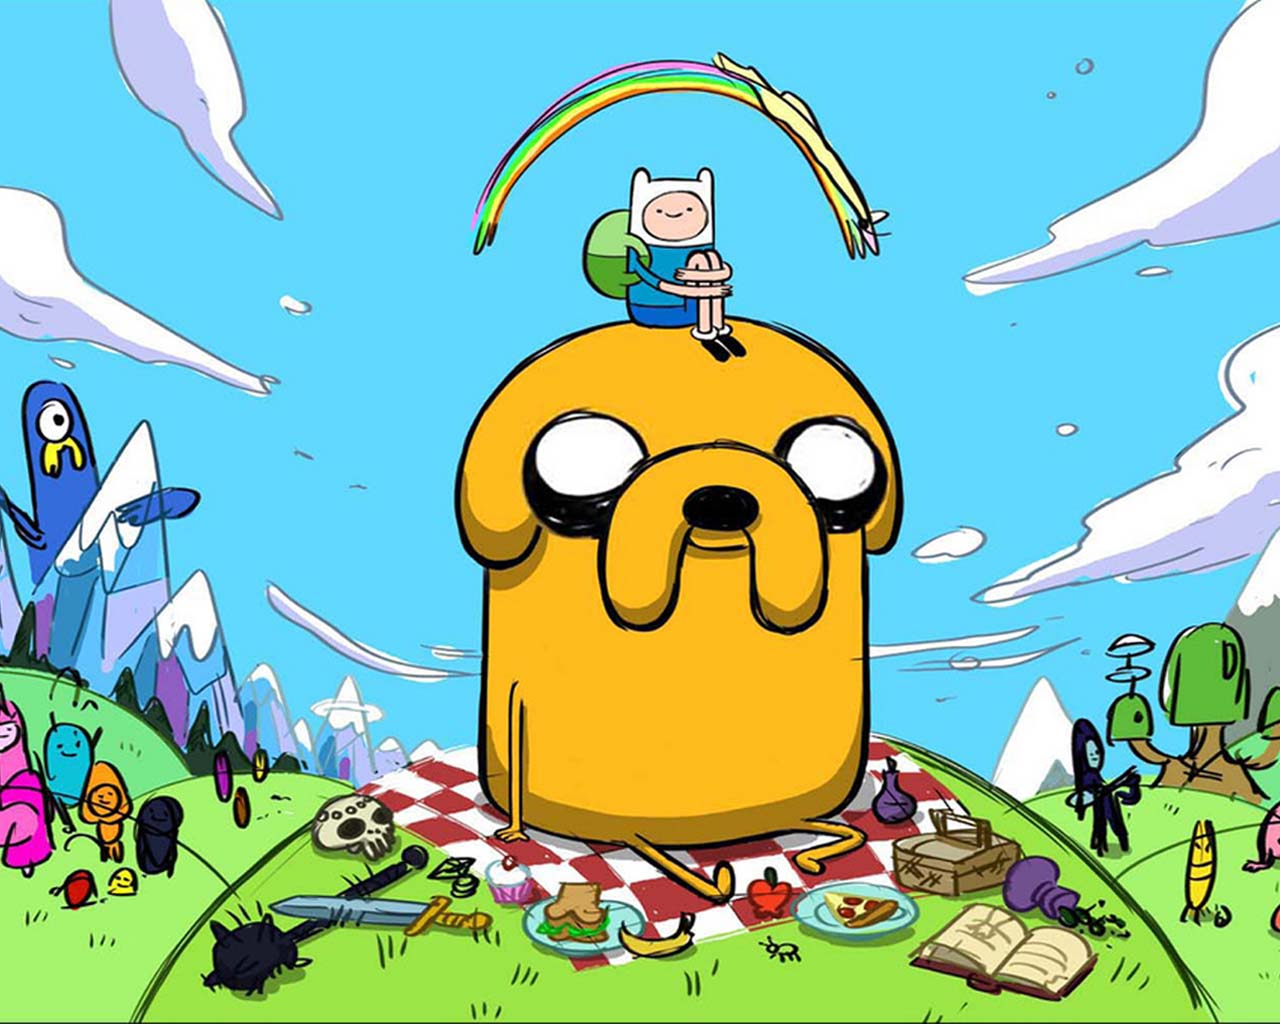 Hora de aventura con finn y jake on we heart it altavistaventures Gallery